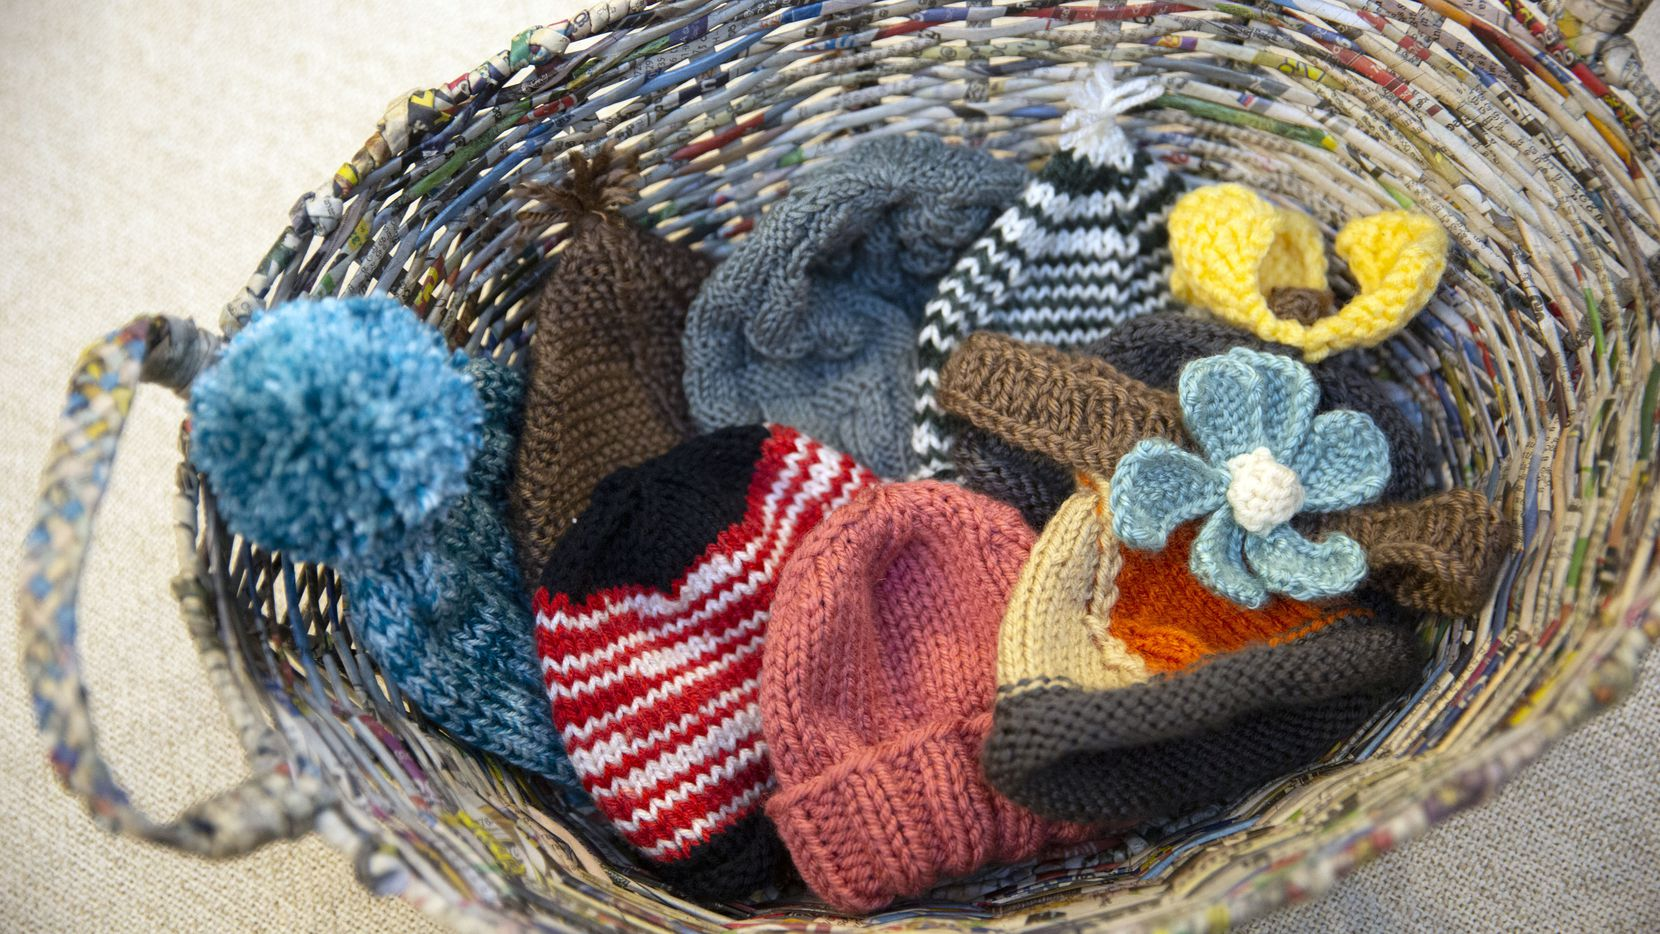 Members of the Roseman family have been knitting hats for newborns at Parkland Memorial Hospital during the COVID-19 pandemic.